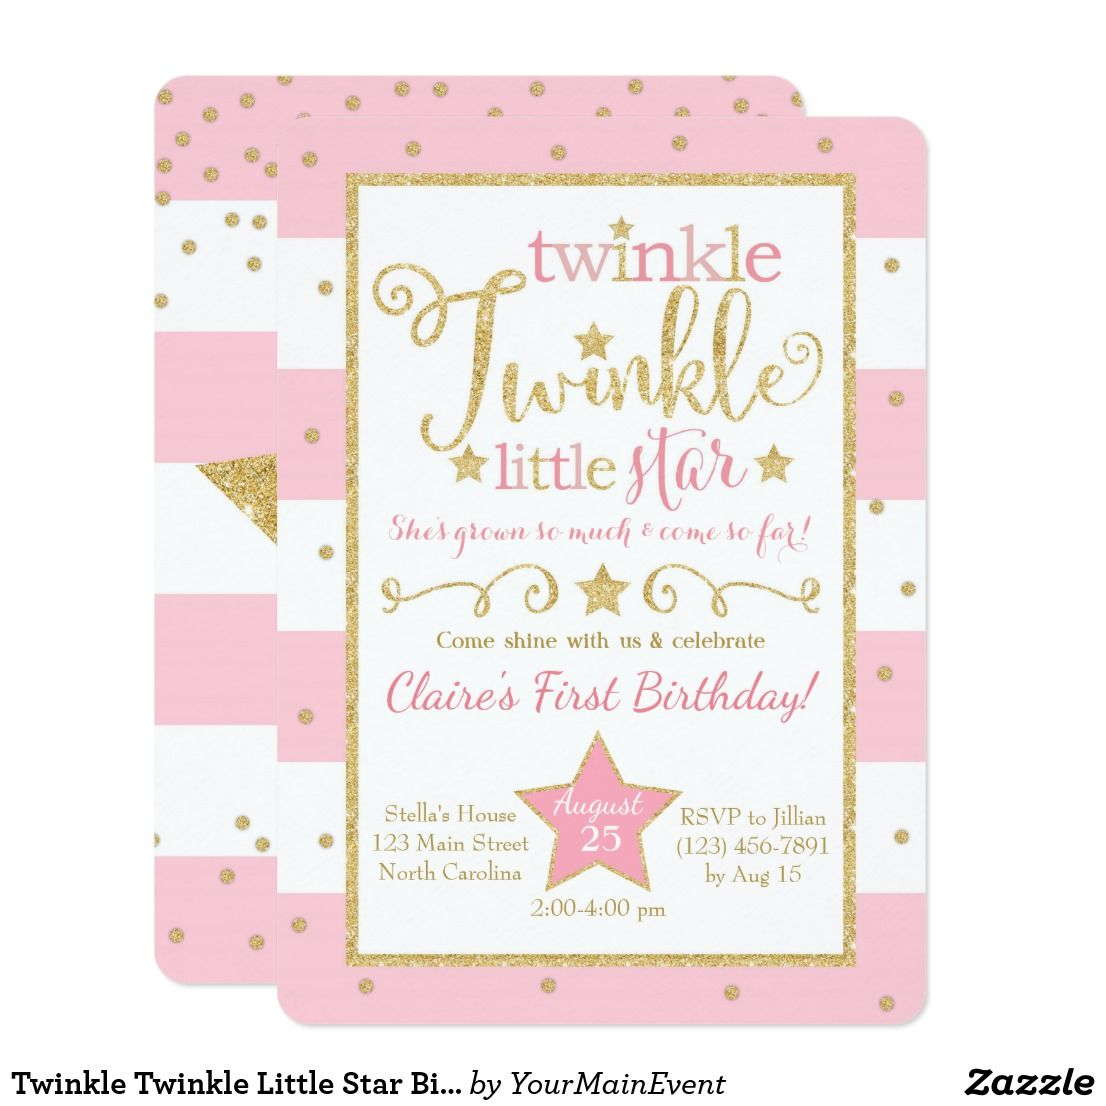 Twinkle Twinkle Little Star Birthday Invitation This pink and gold ...